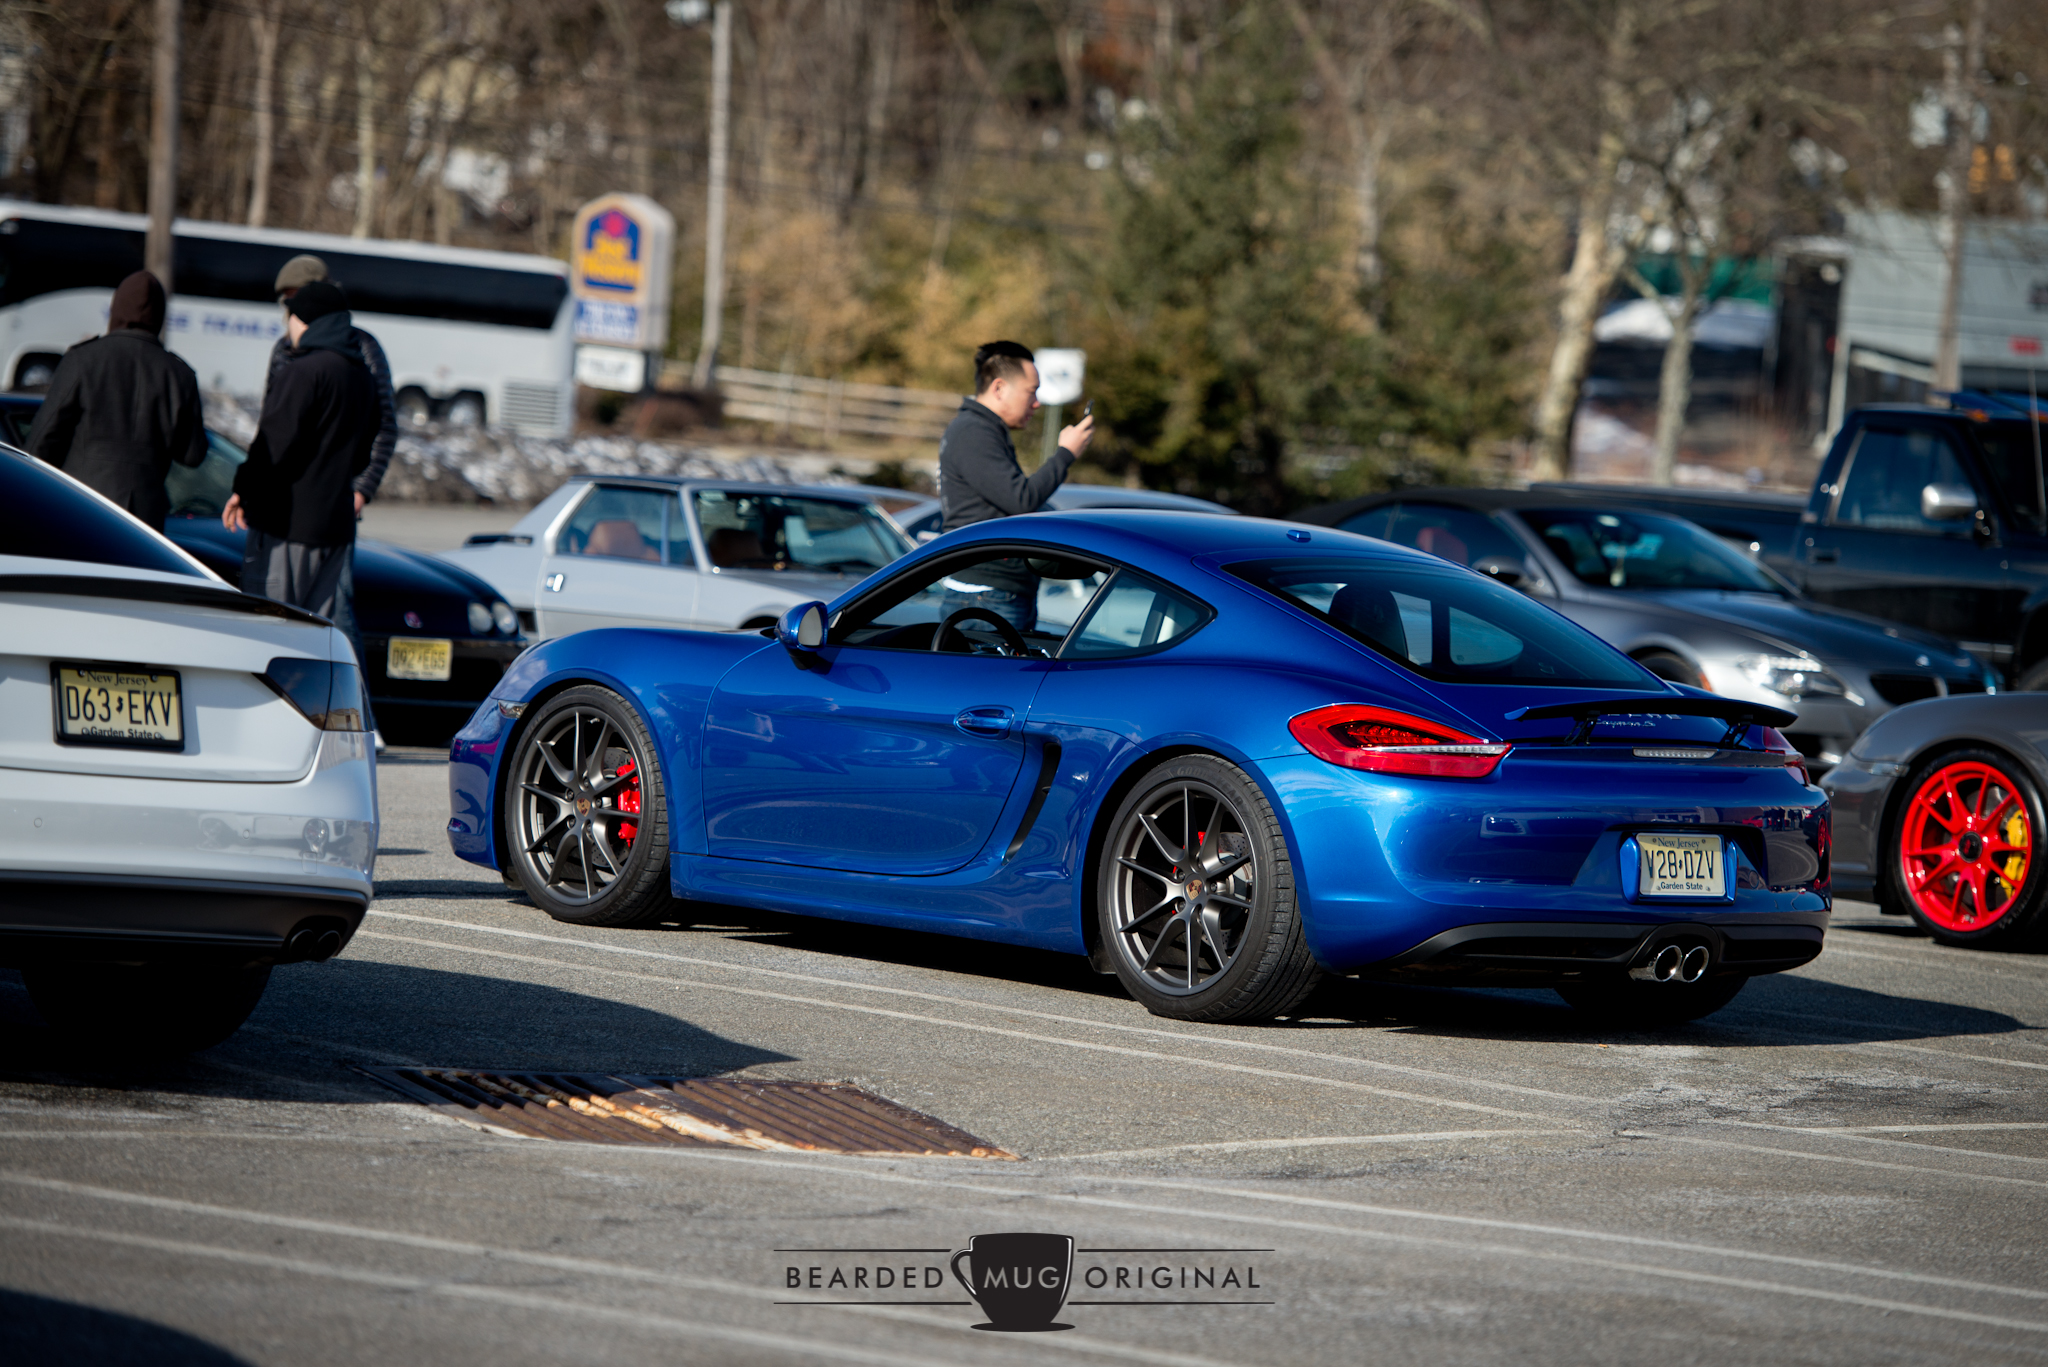 Sapphire blue Cayman S is becoming a staple to the C&C events.